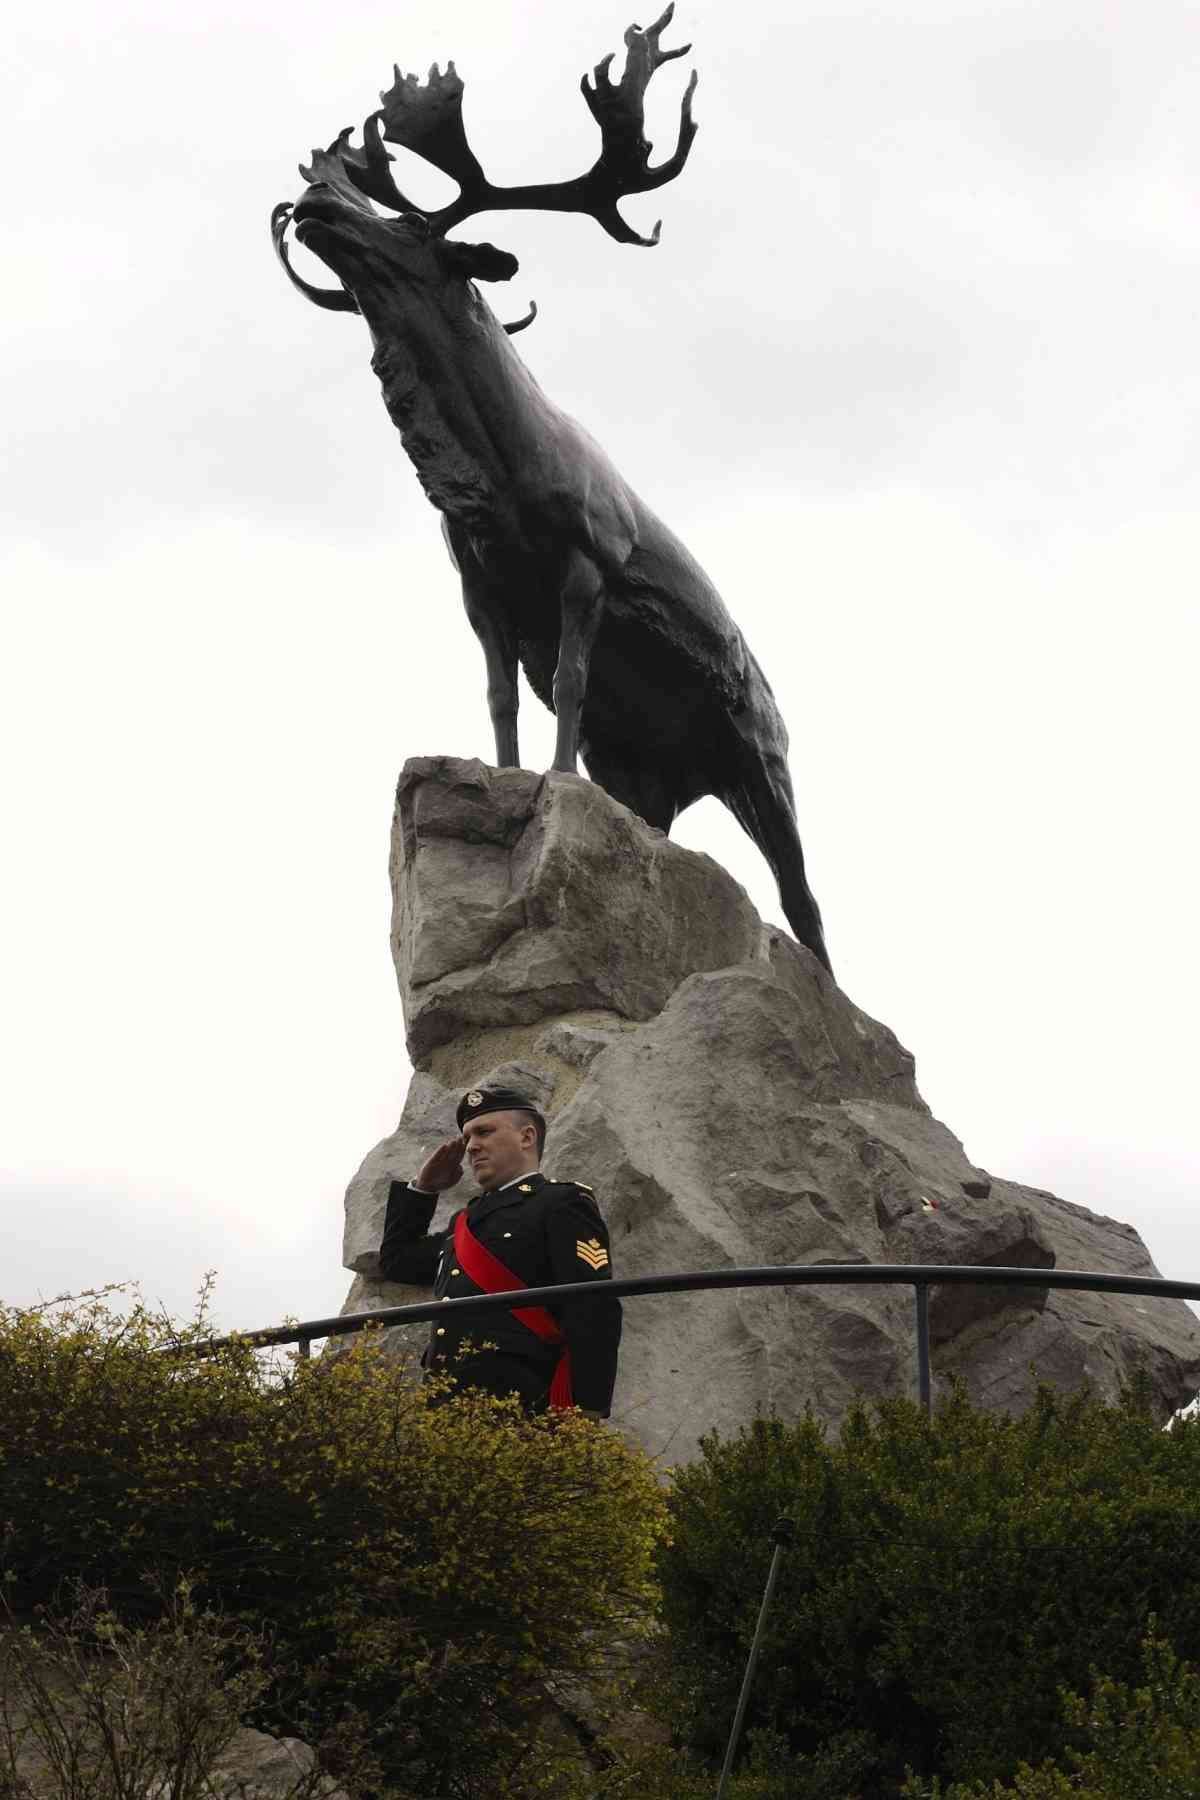 The Beaumont-Hamel Memorial commemorates all Newfoundlanders who fought in the Great War, particularly those who have no known grave.